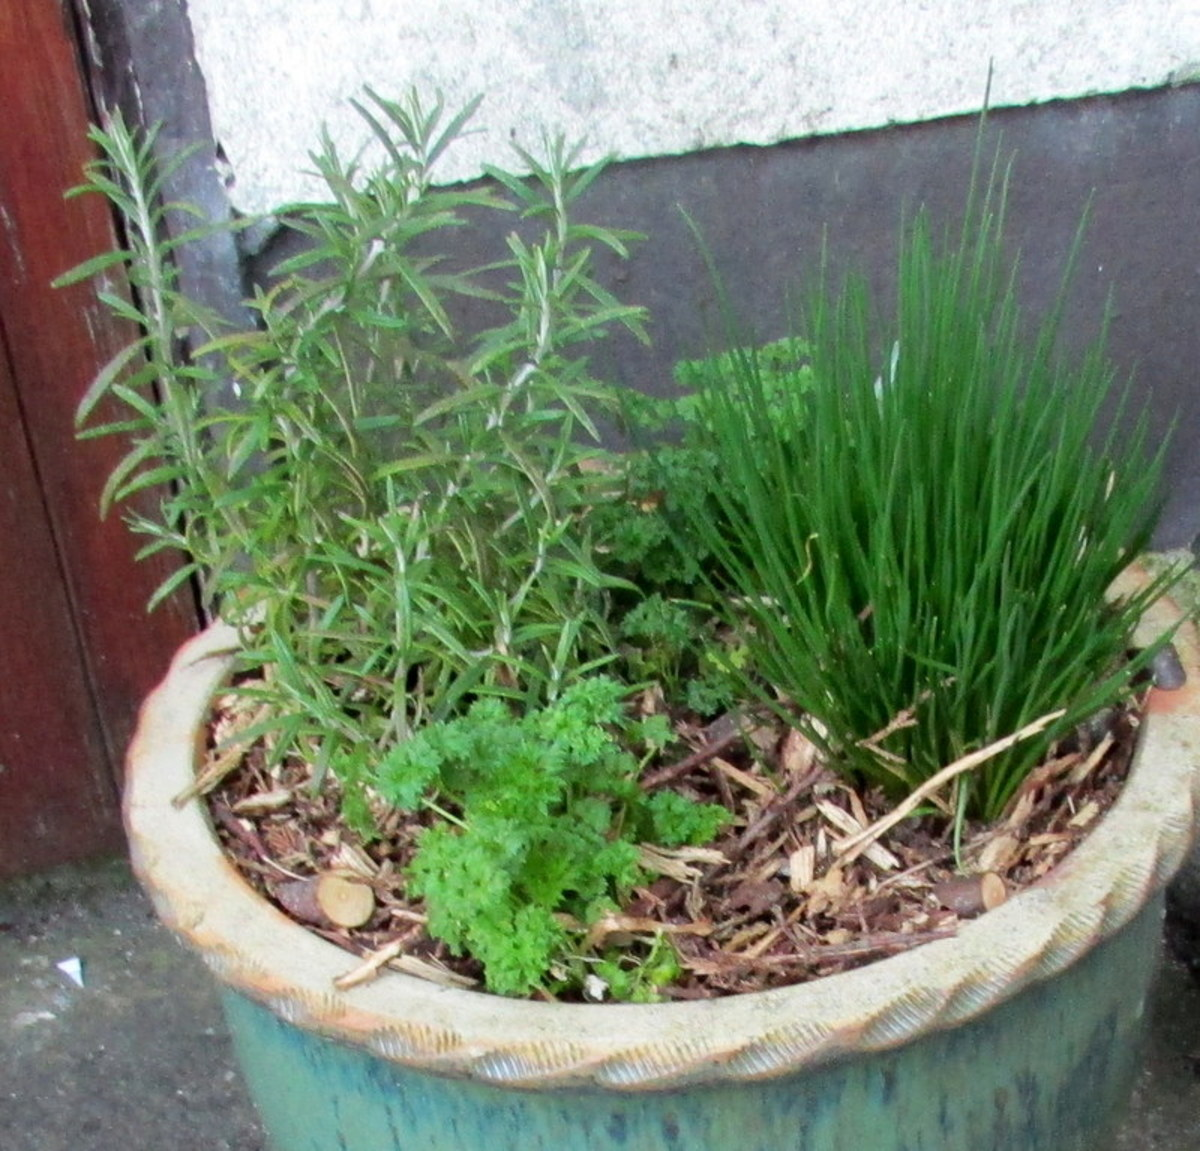 Thyme, Parsley and Chives next to your other vegetables will protect them from slugs and snails